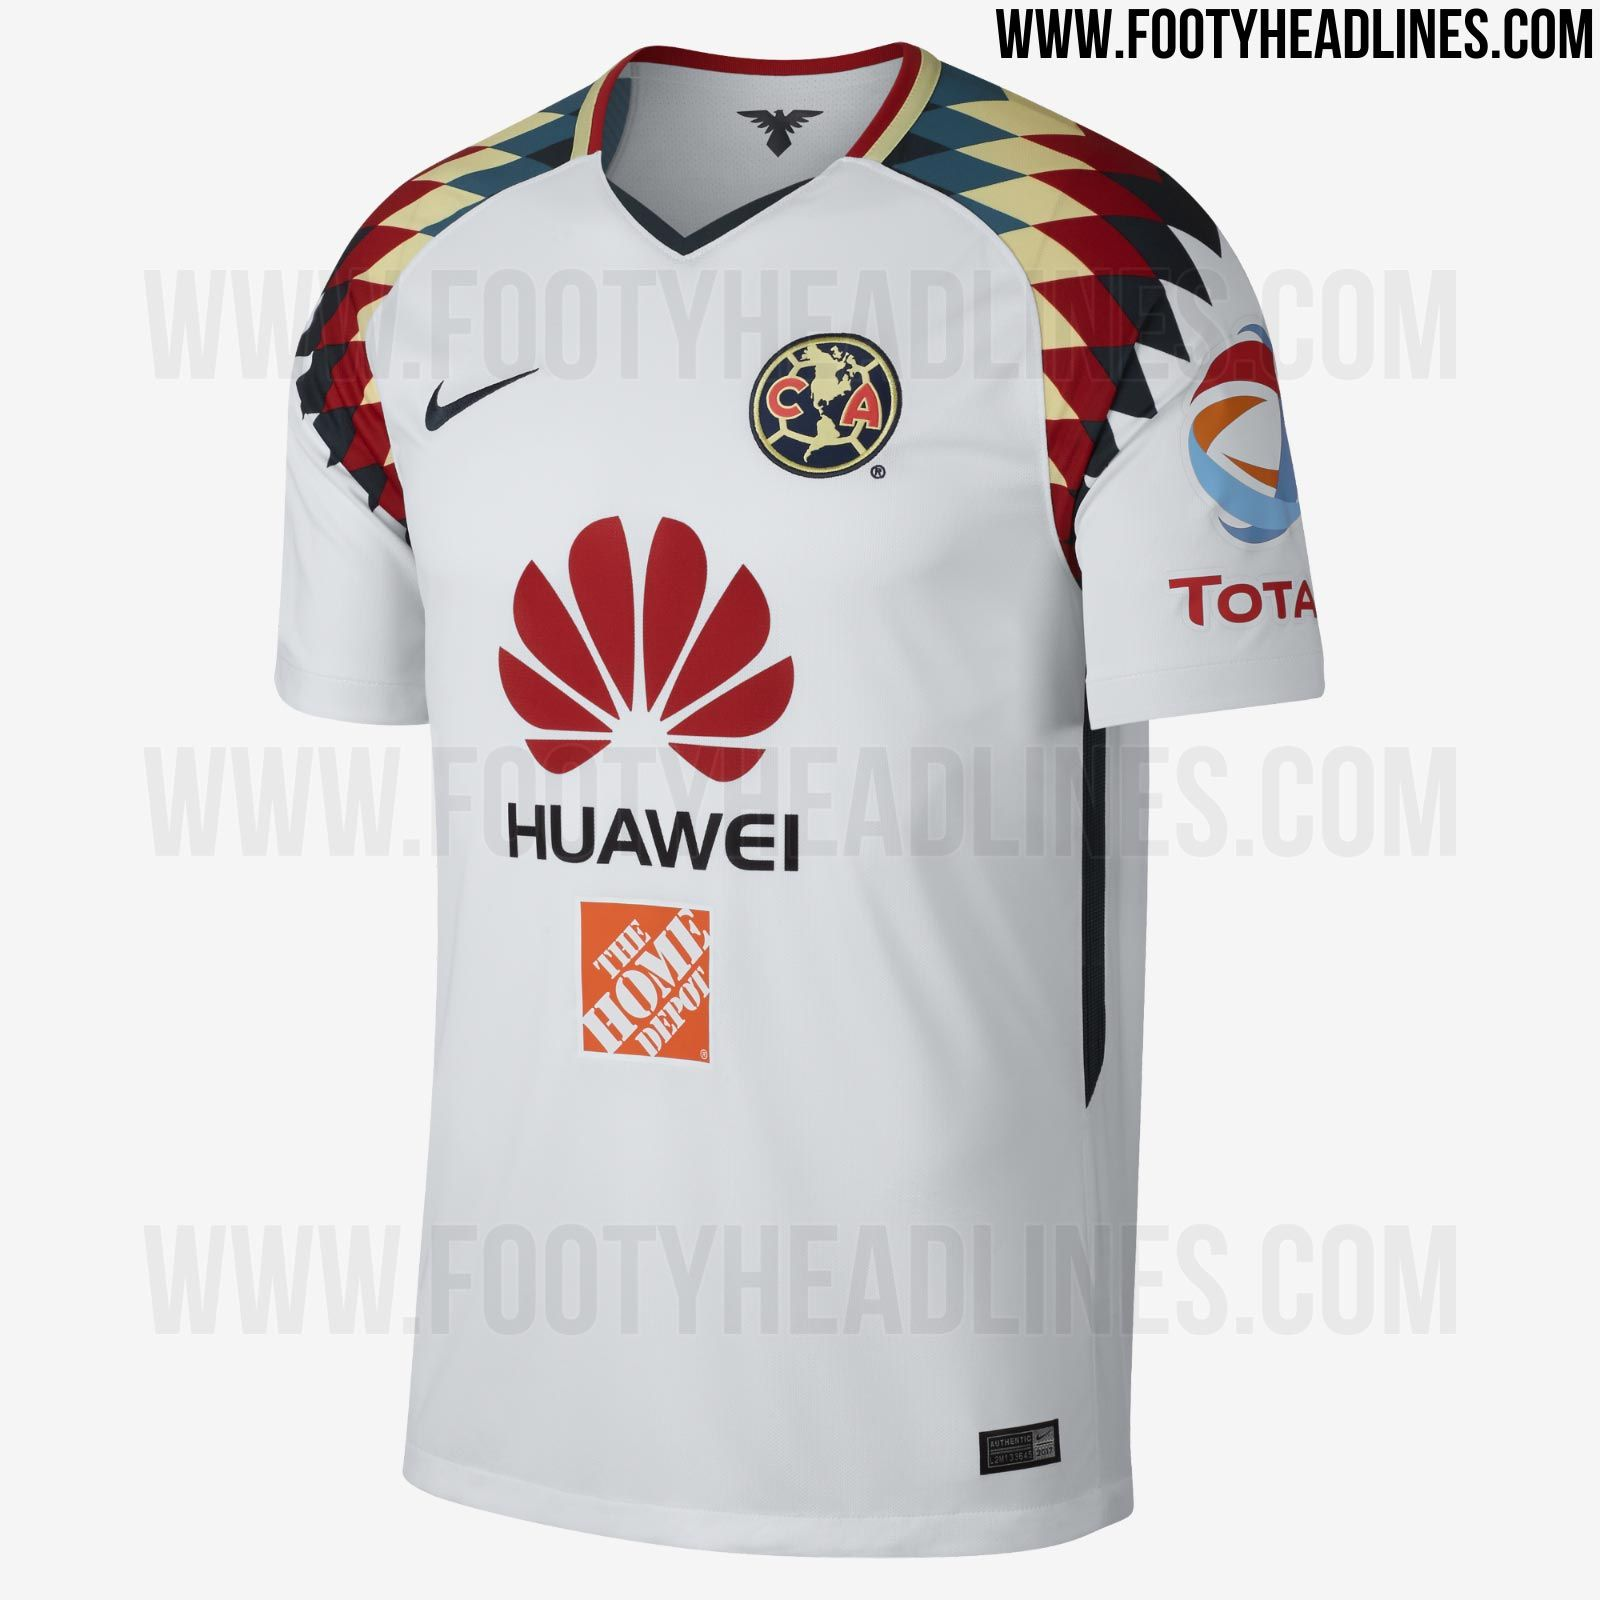 6e3d8ab8ef2 The new Nike Club America 2017-2018 away jersey boasts an outstanding  design.